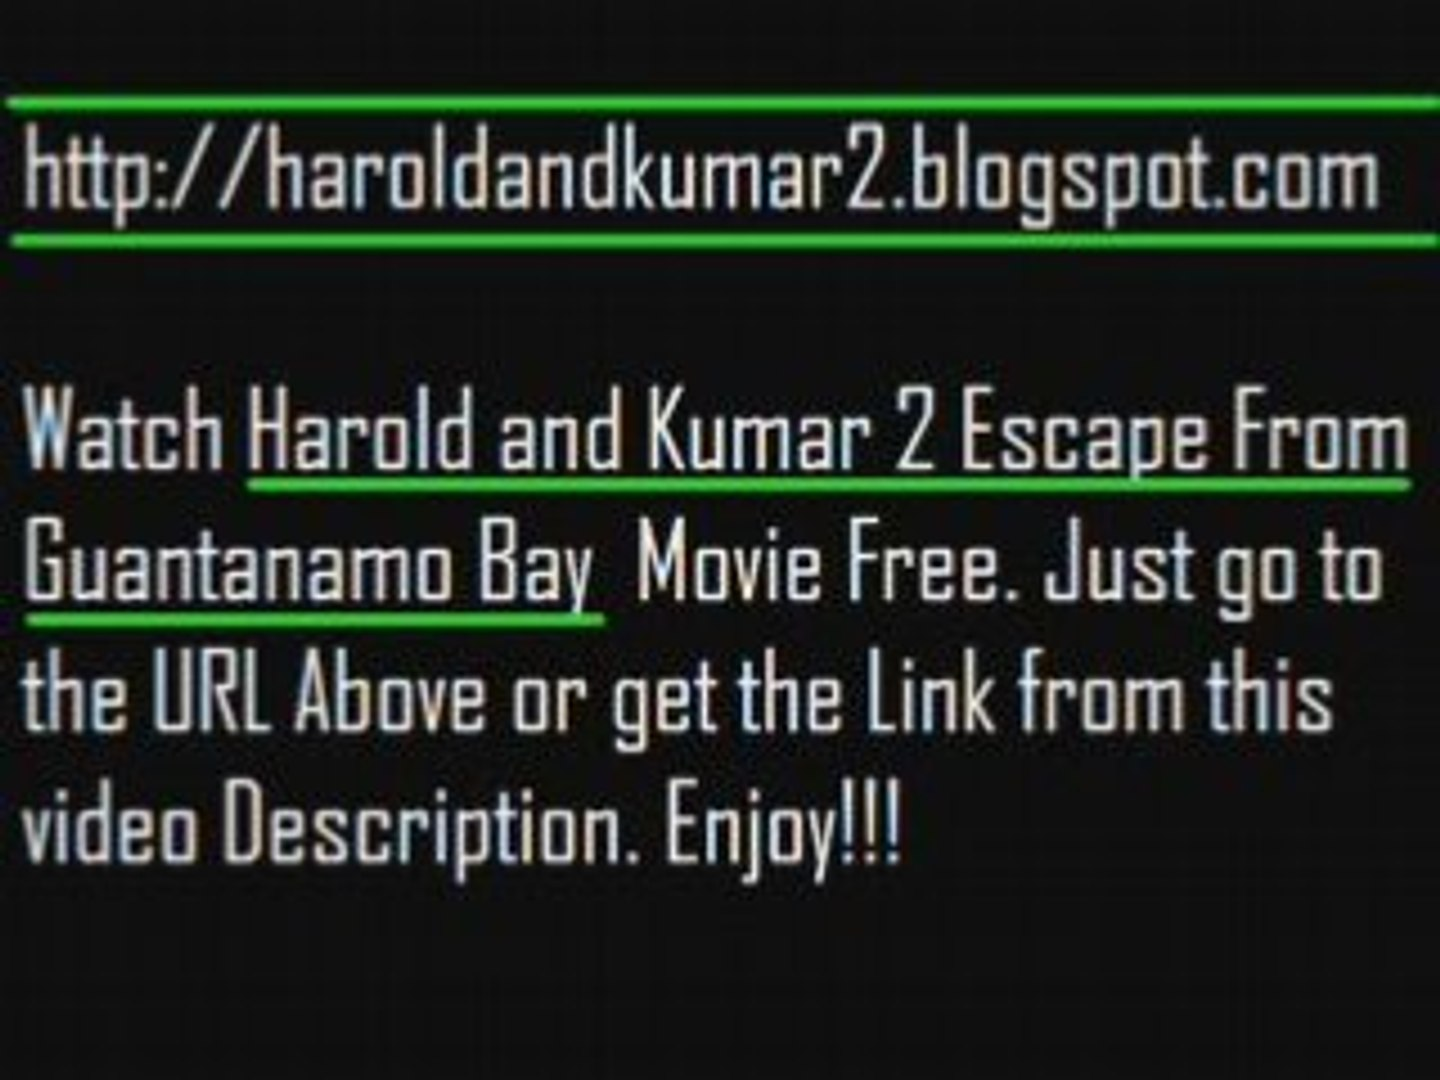 Harold And Kumar Escape From Guantanamo Bay Full Movie Free watch harold and kumar 2 escape from guantanamo bay 2008 mov